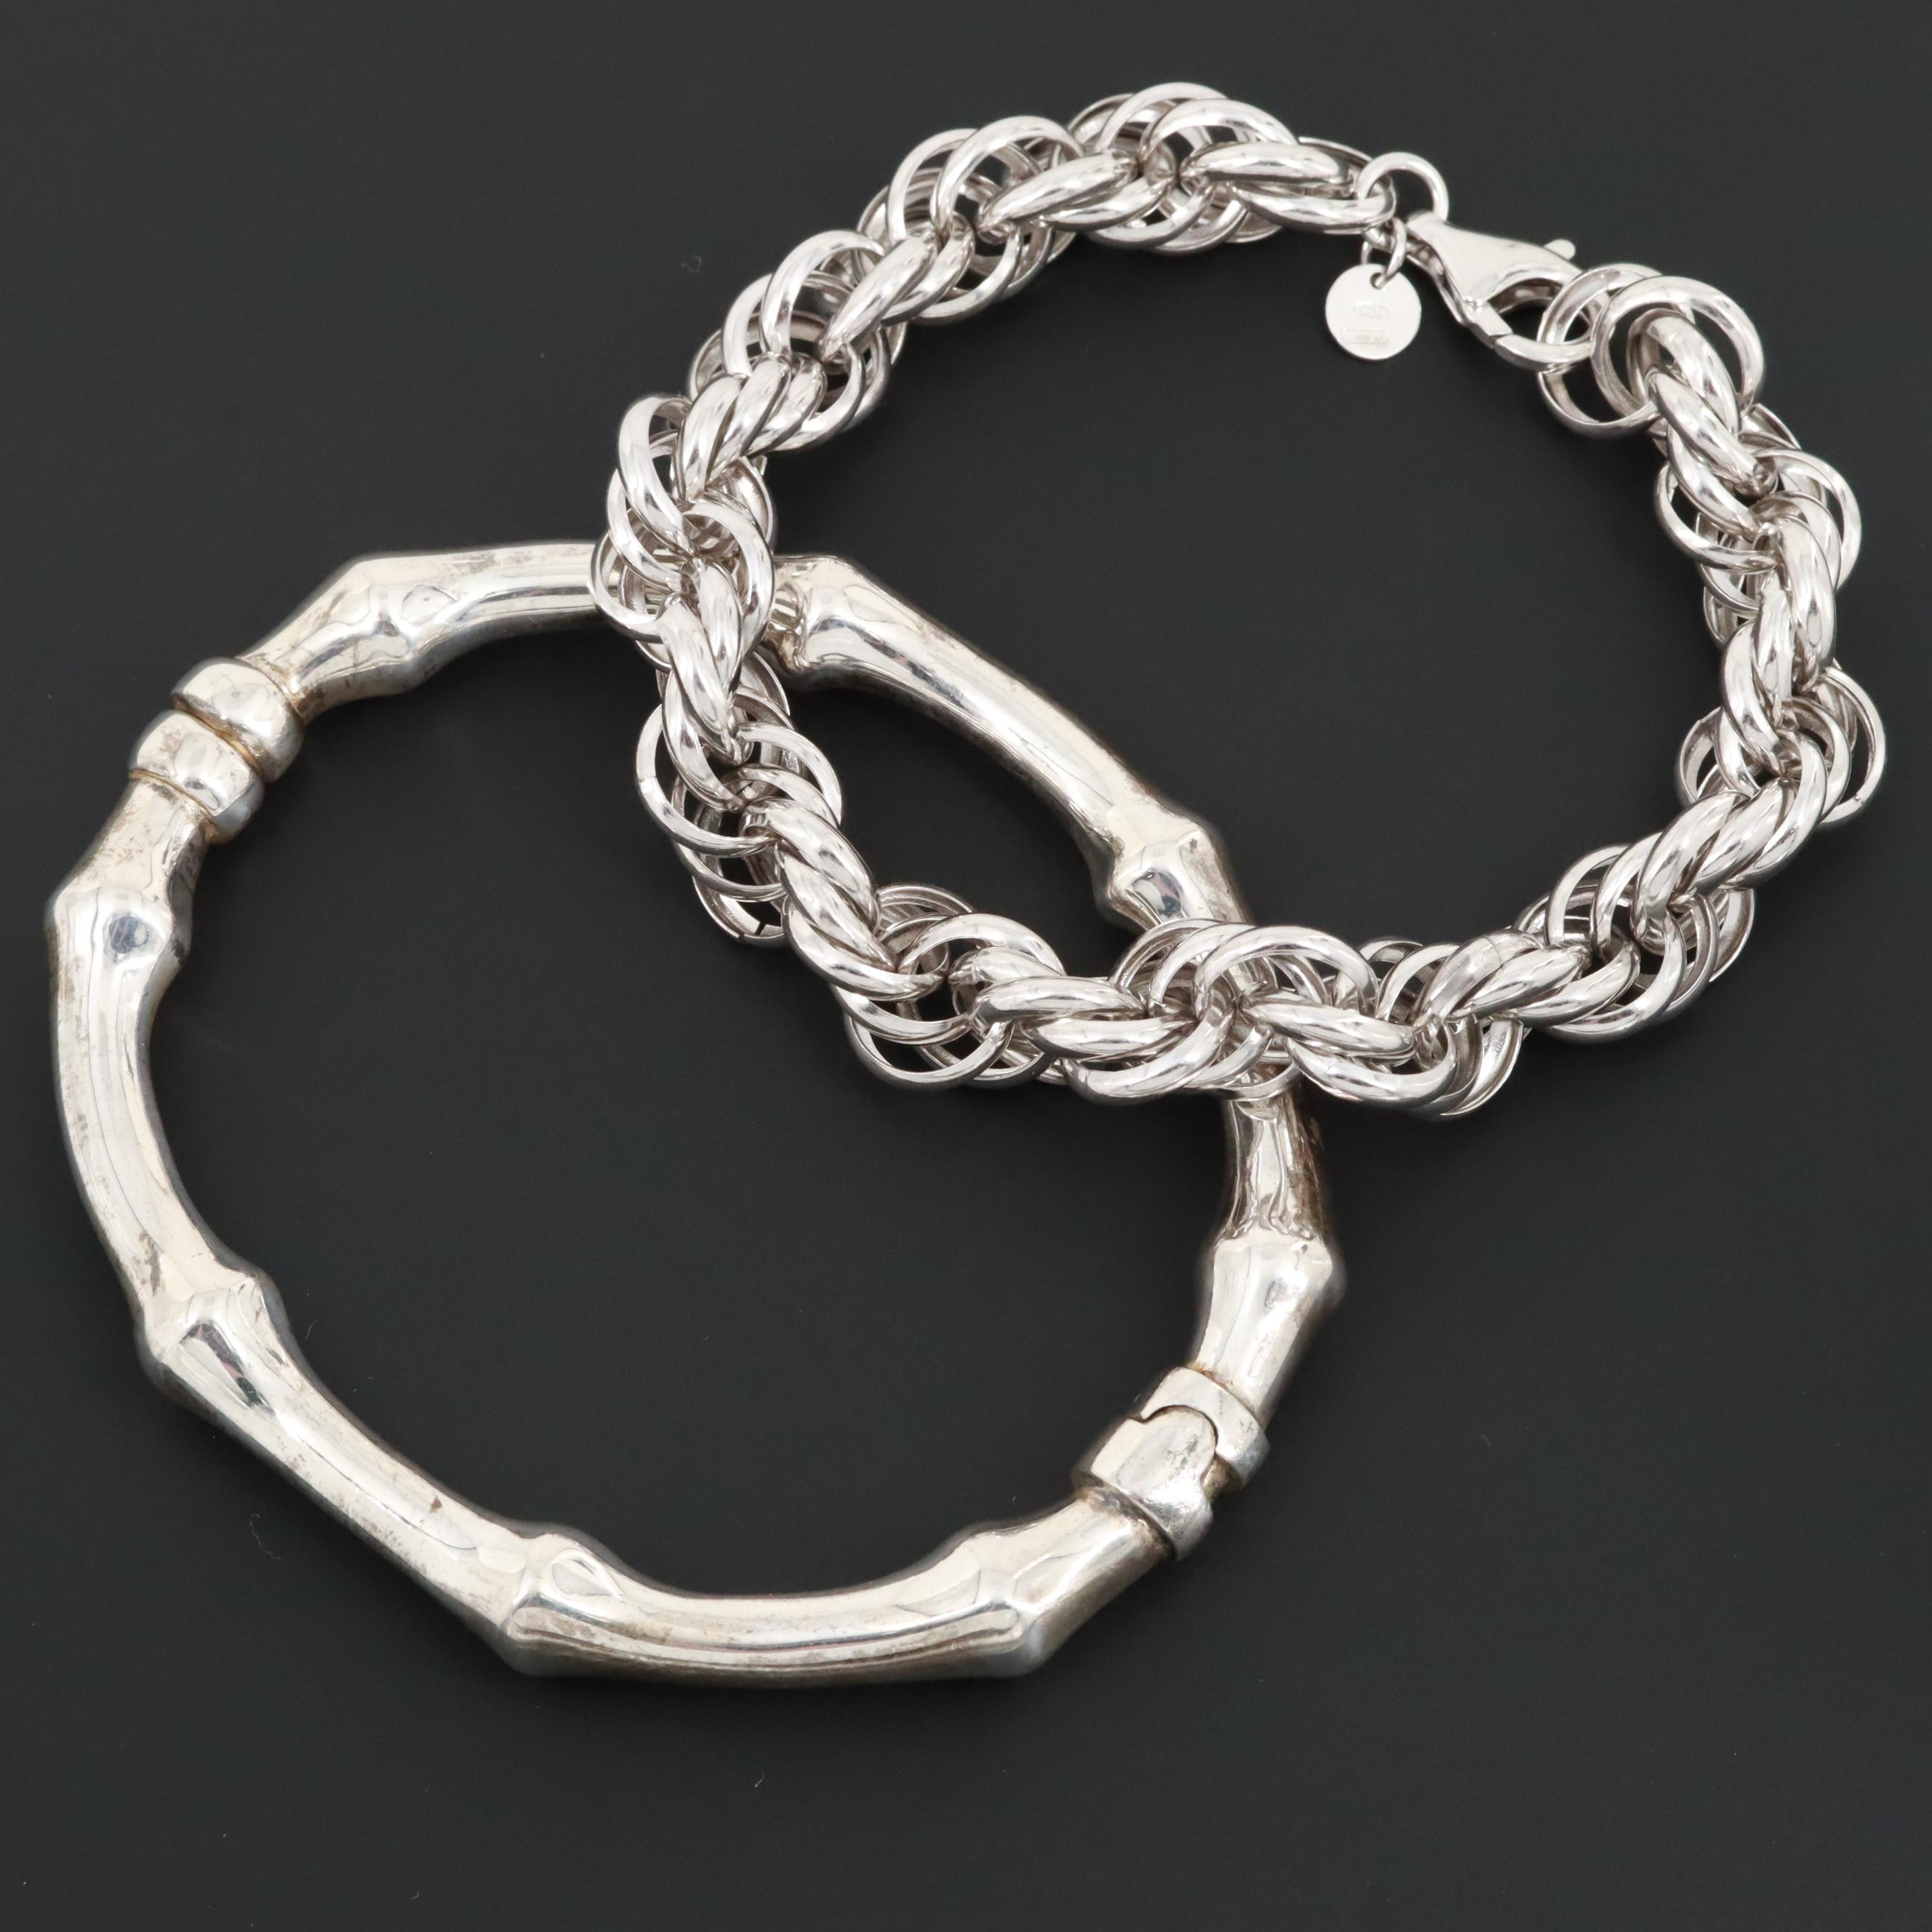 Sterling Silver Rope Bracelet and Hinged Bangle